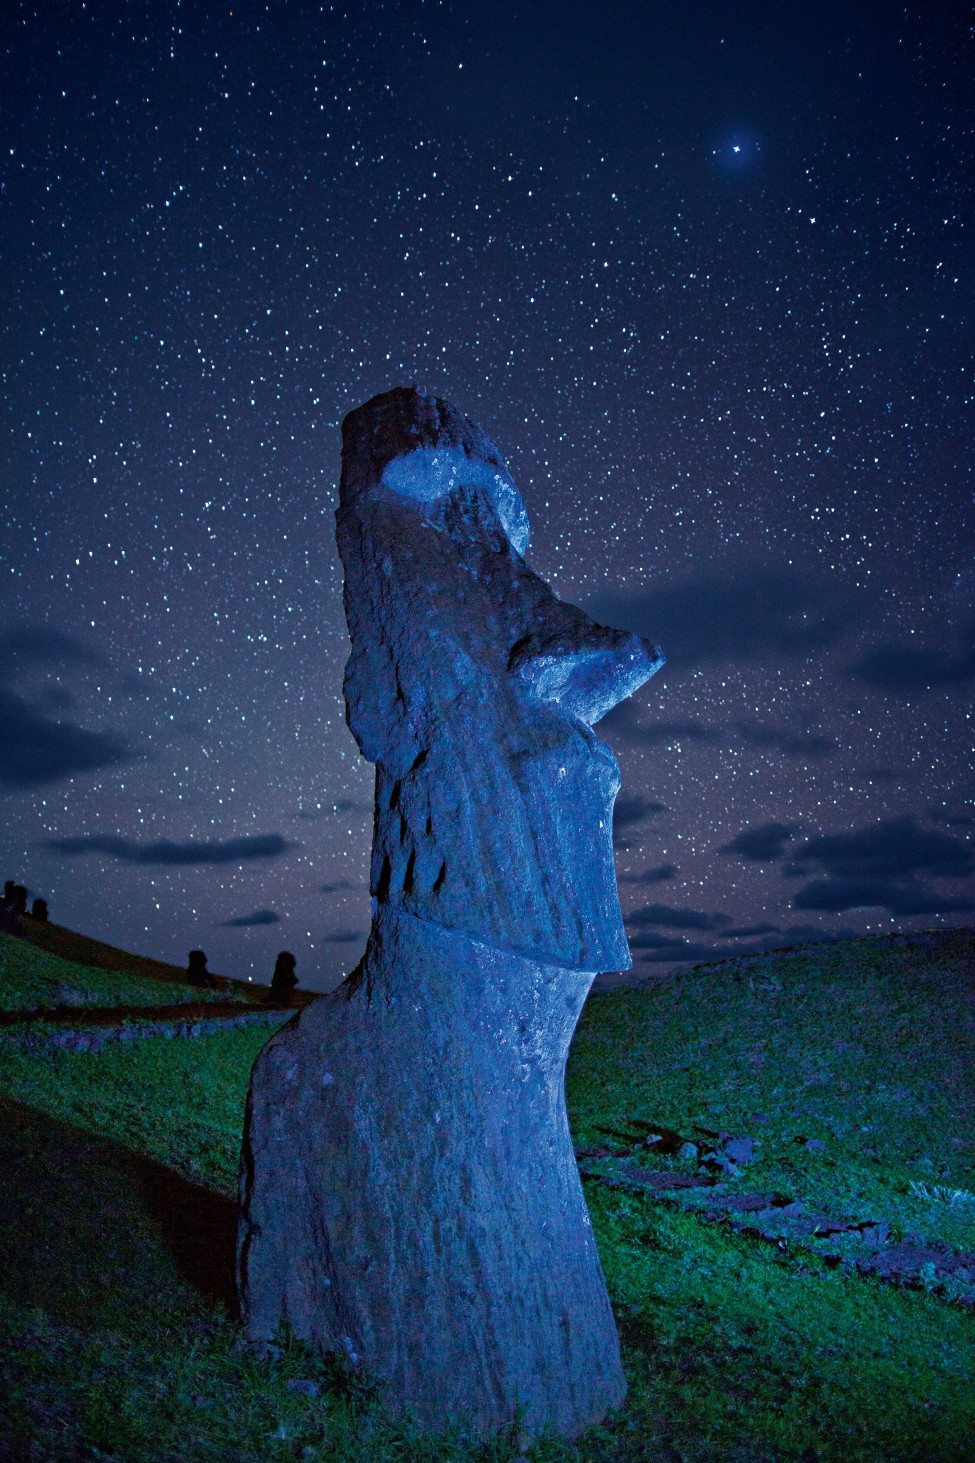 An ancient Moai statue on a hillside at night on Easter Island (Rapa Nui) in the south-eastern Pacific Ocean. The island falls within Chilean territory and its government has proposed the Easter Island Marine Park, which would protect more than 630,000 square kilometres of ocean. <br /> Photo by Randy Olson | National Geographic Creative